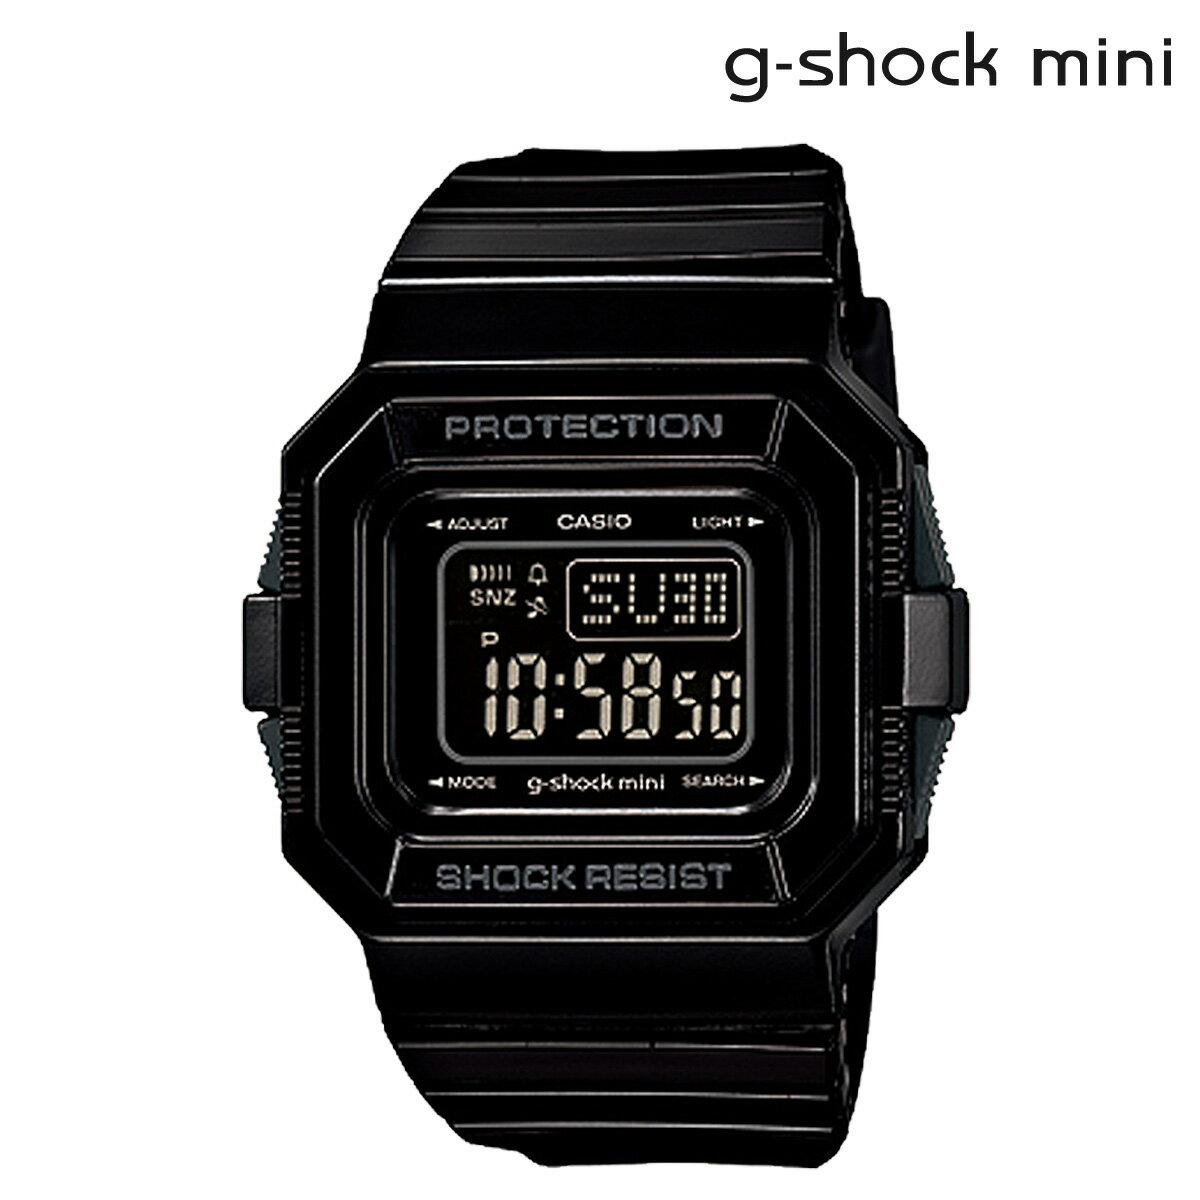 腕時計, レディース腕時計 2000OFF CASIO g-shock mini GMN-550-1DJR G G-